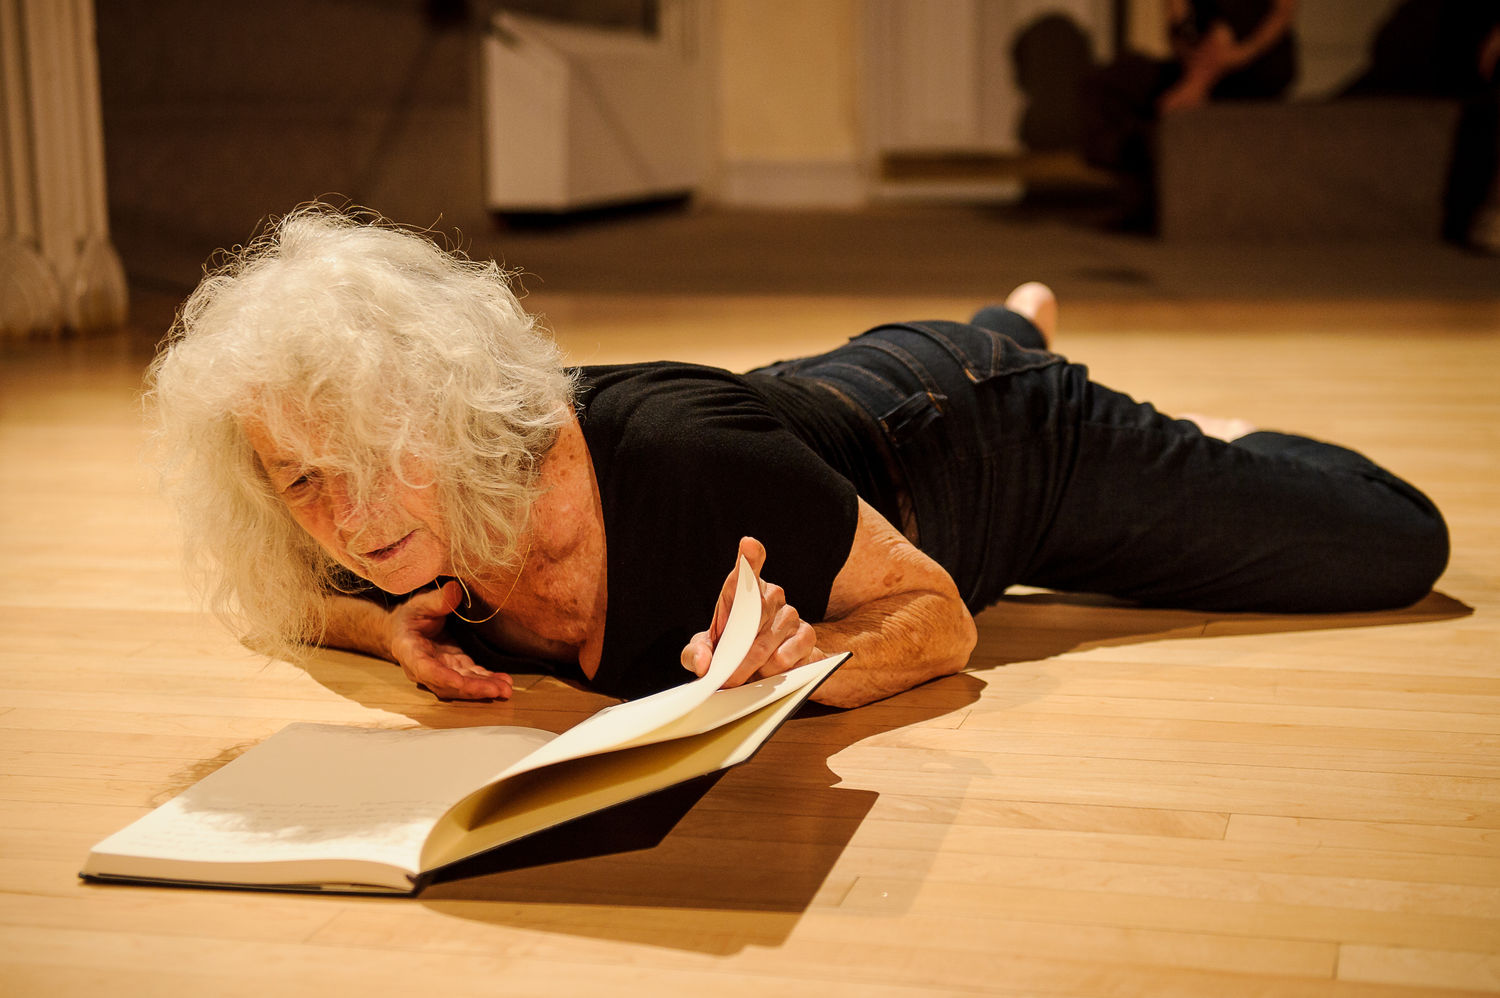 A woman lies on the ground, looking into an open book